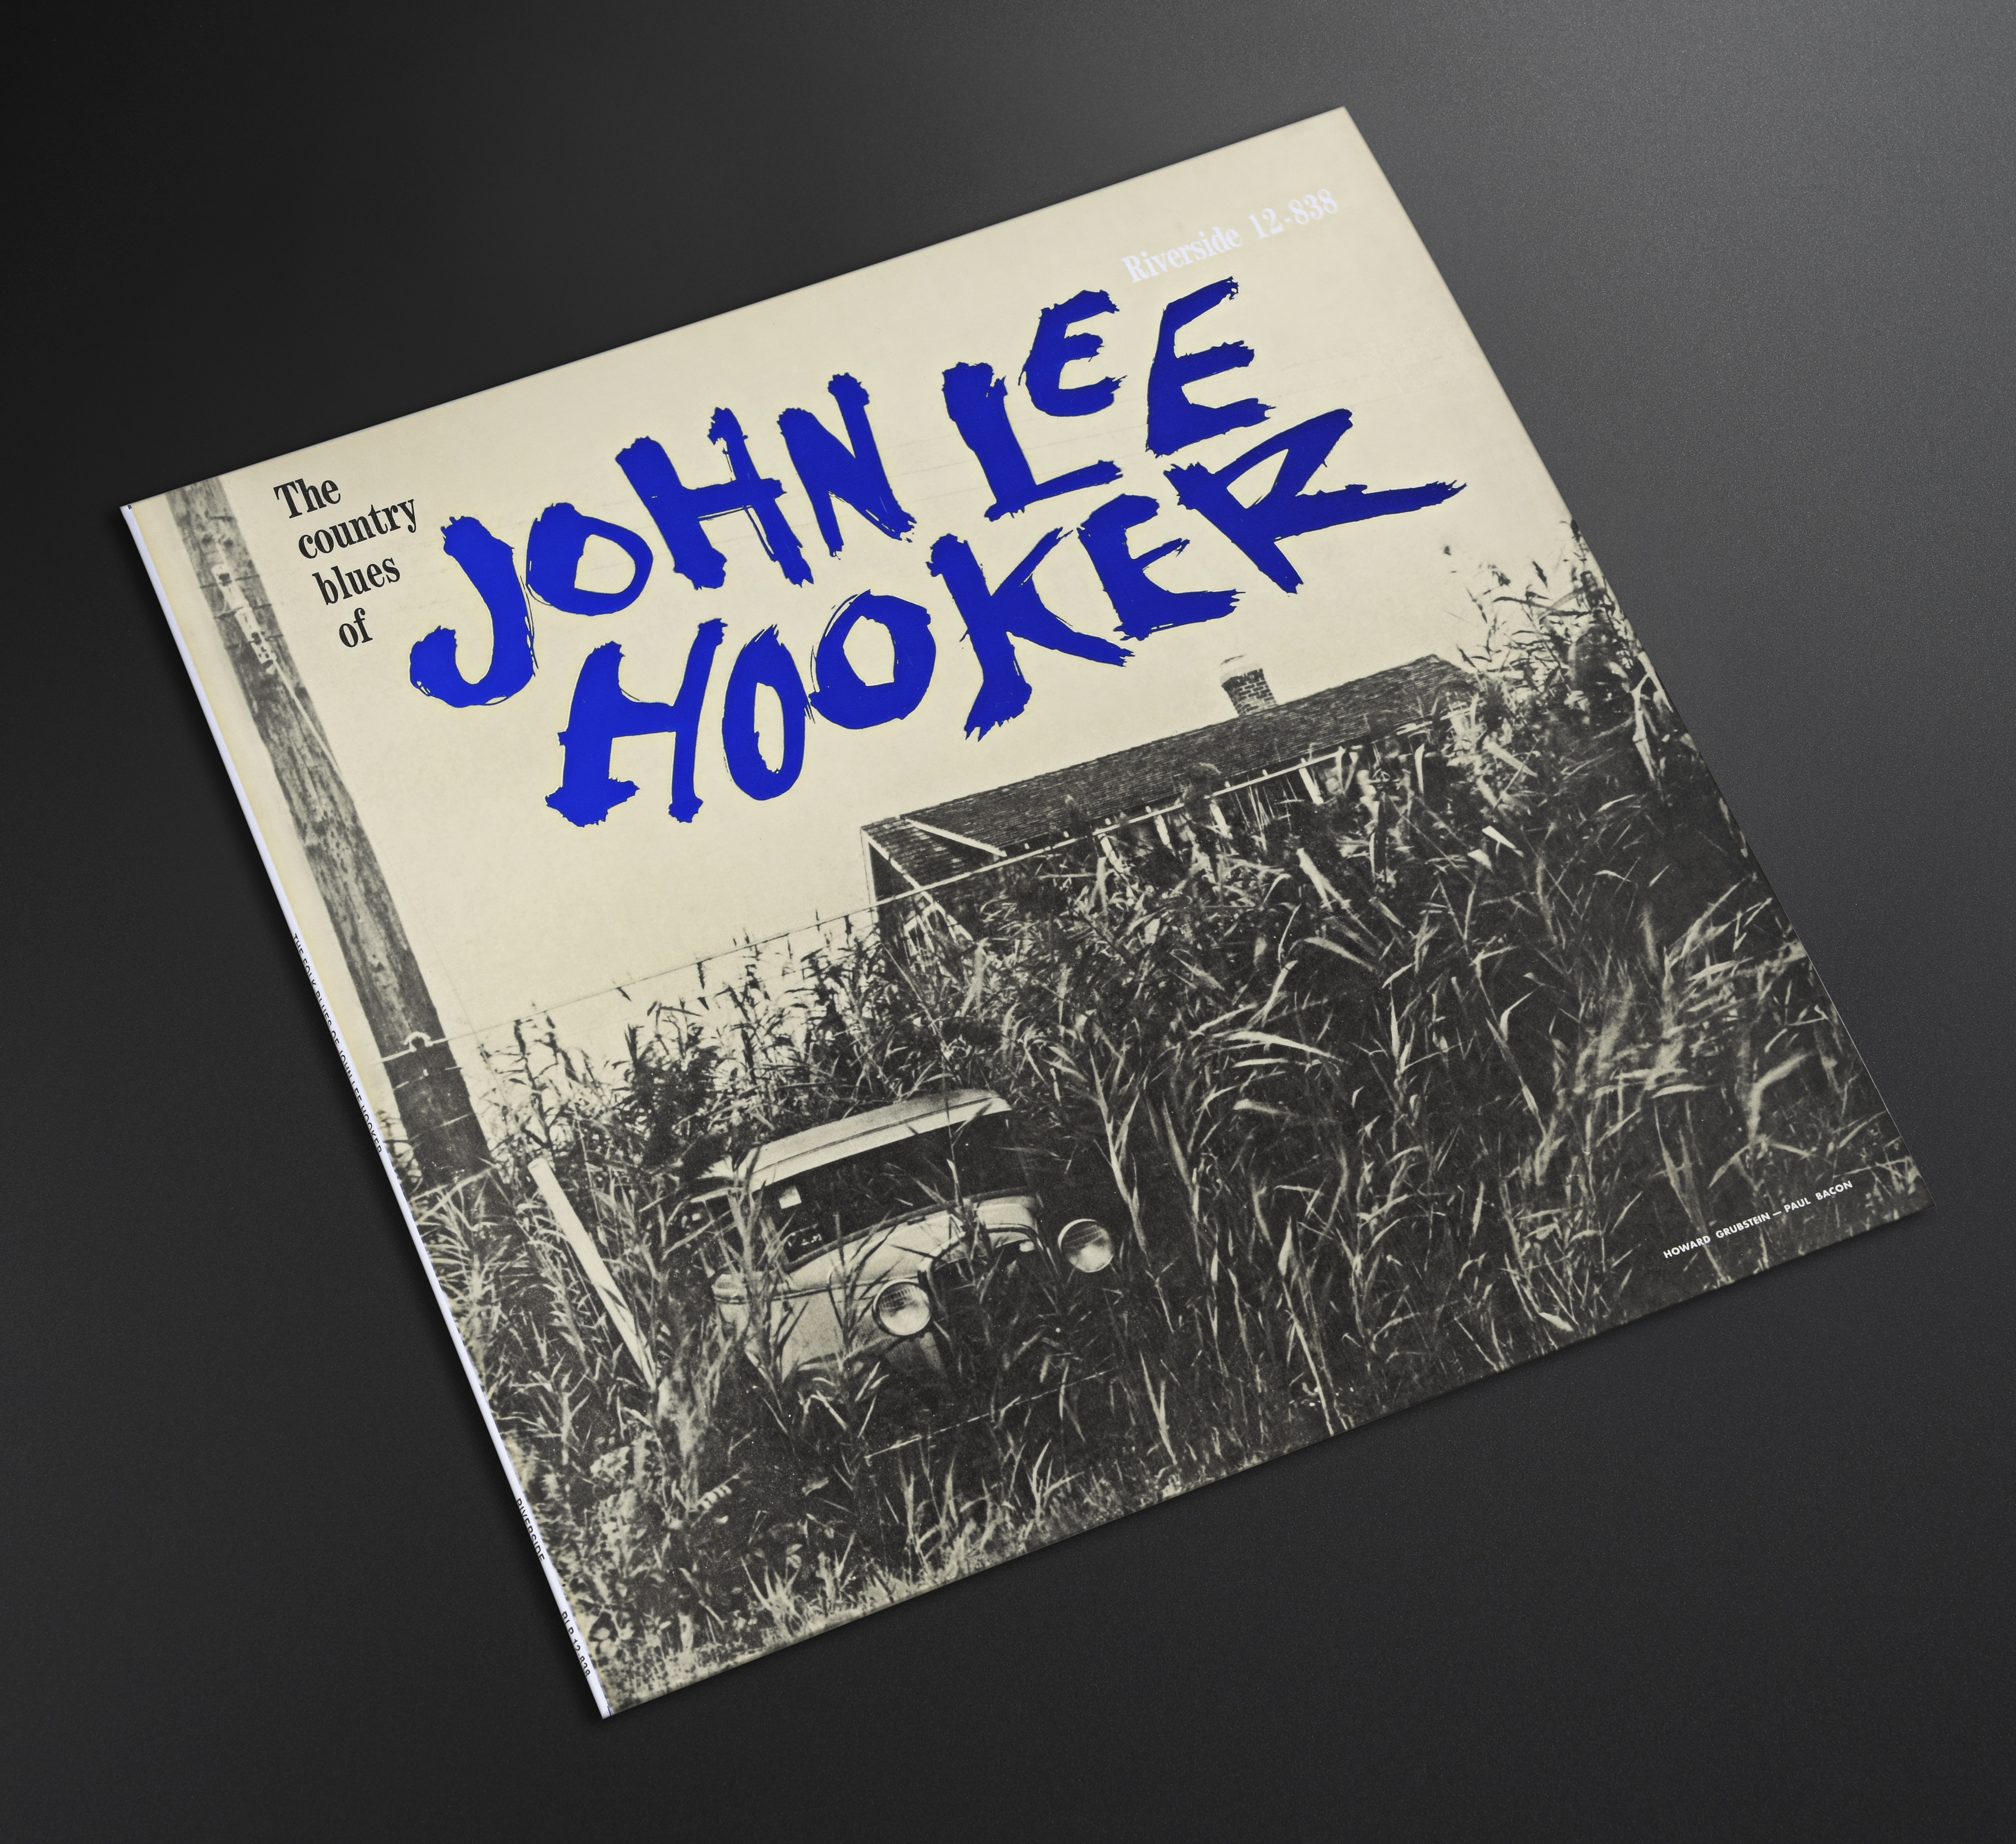 ERC041 John Lee Hooker - The Country Blues of John Lee Hooker